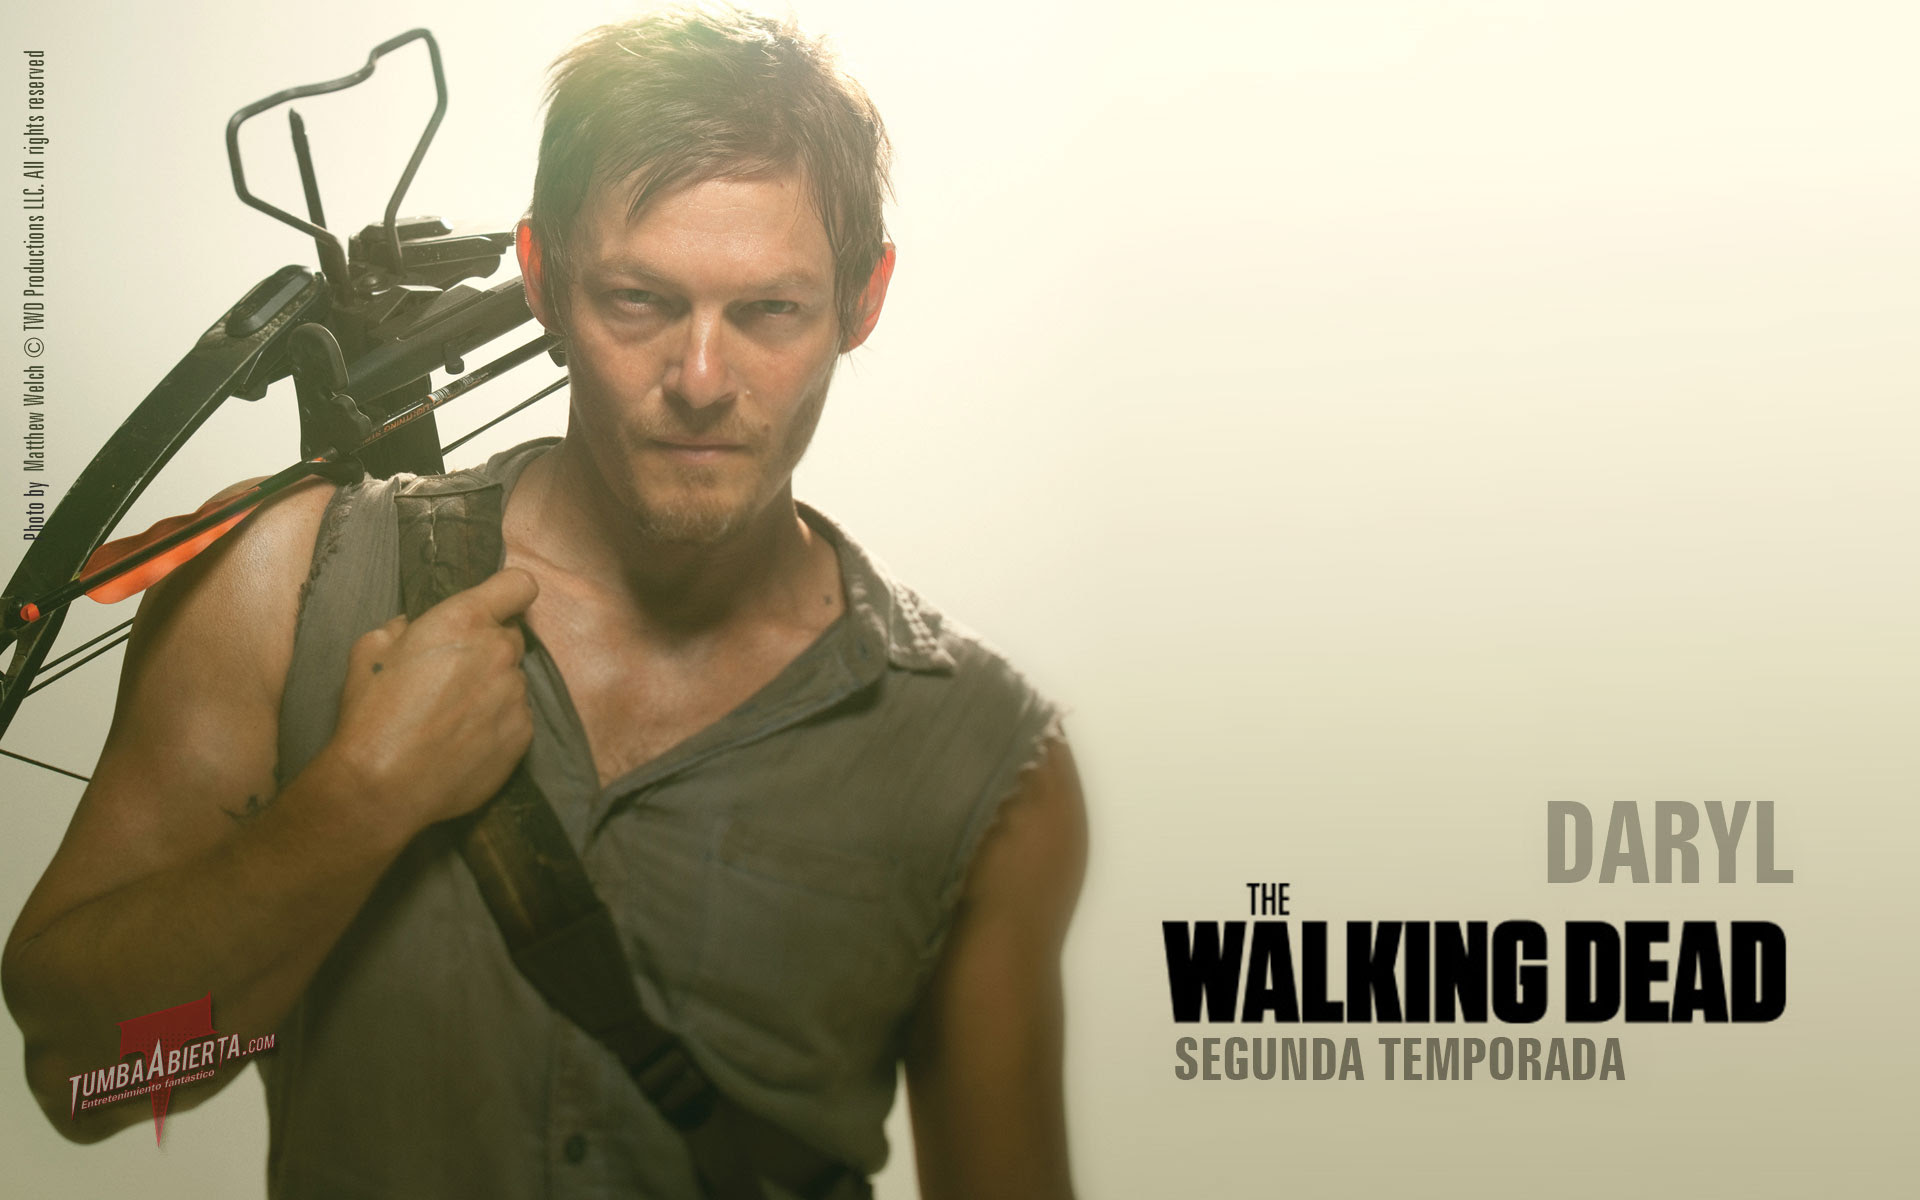 Daryl The Walking Dead Wallpaper 1920x1200 56739